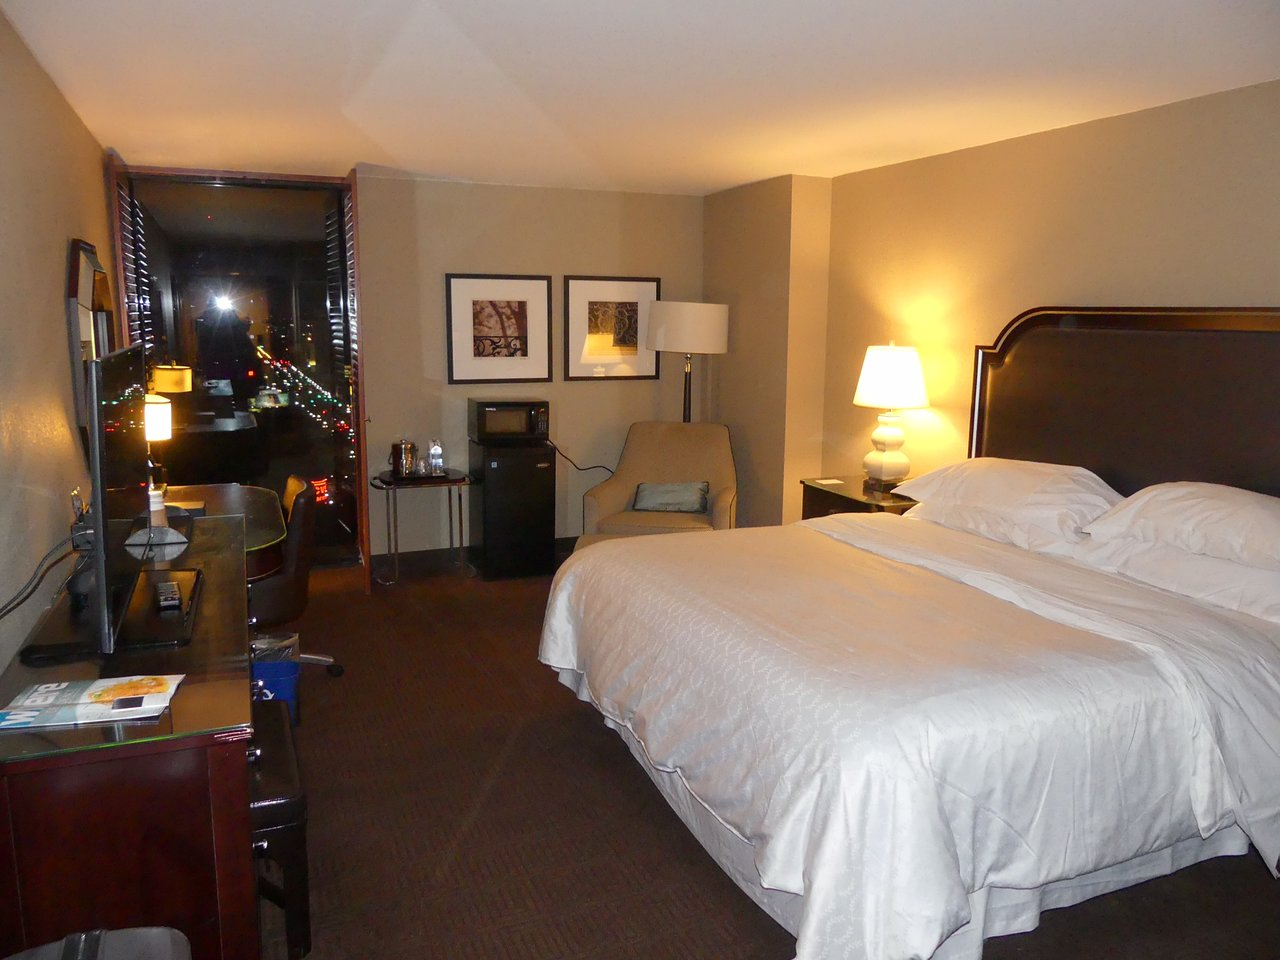 SHERATON NEW ORLEANS HOTEL - Updated 2018 Prices & Reviews (LA ...